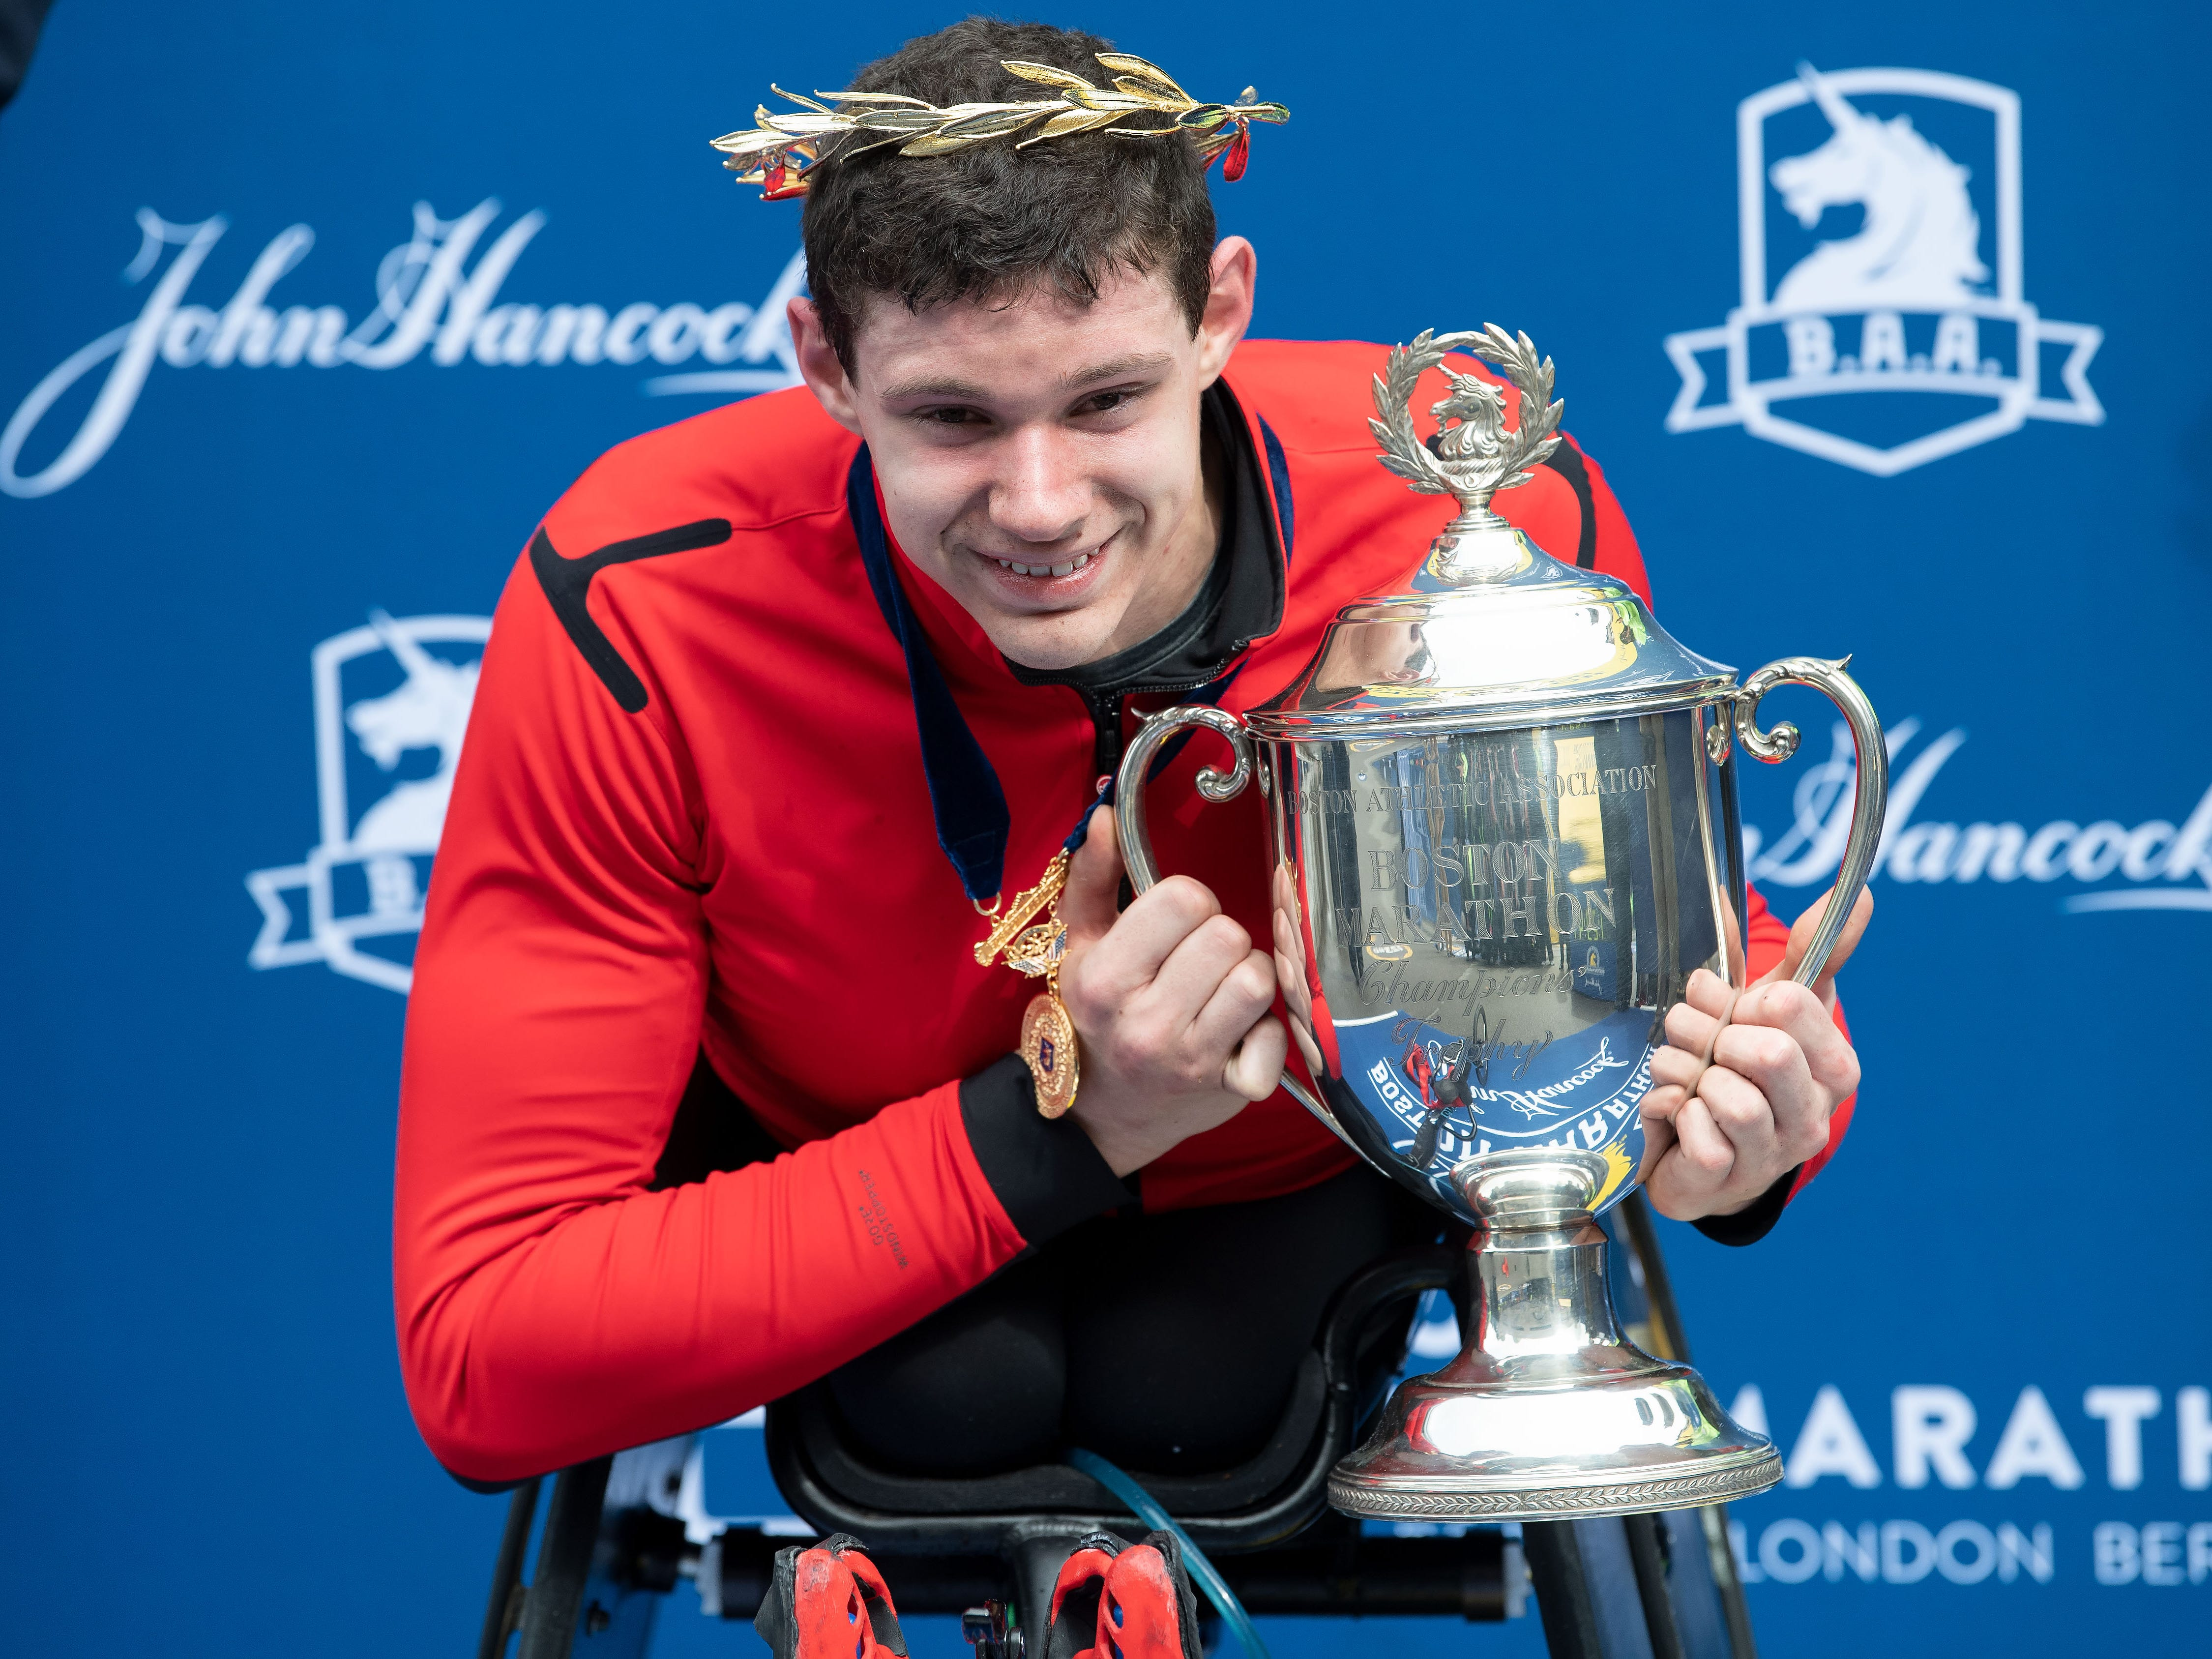 Daniel Romanchuk of the USA holds the trophy after winning the men's wheelchair division in the 2019 Boston Marathon.